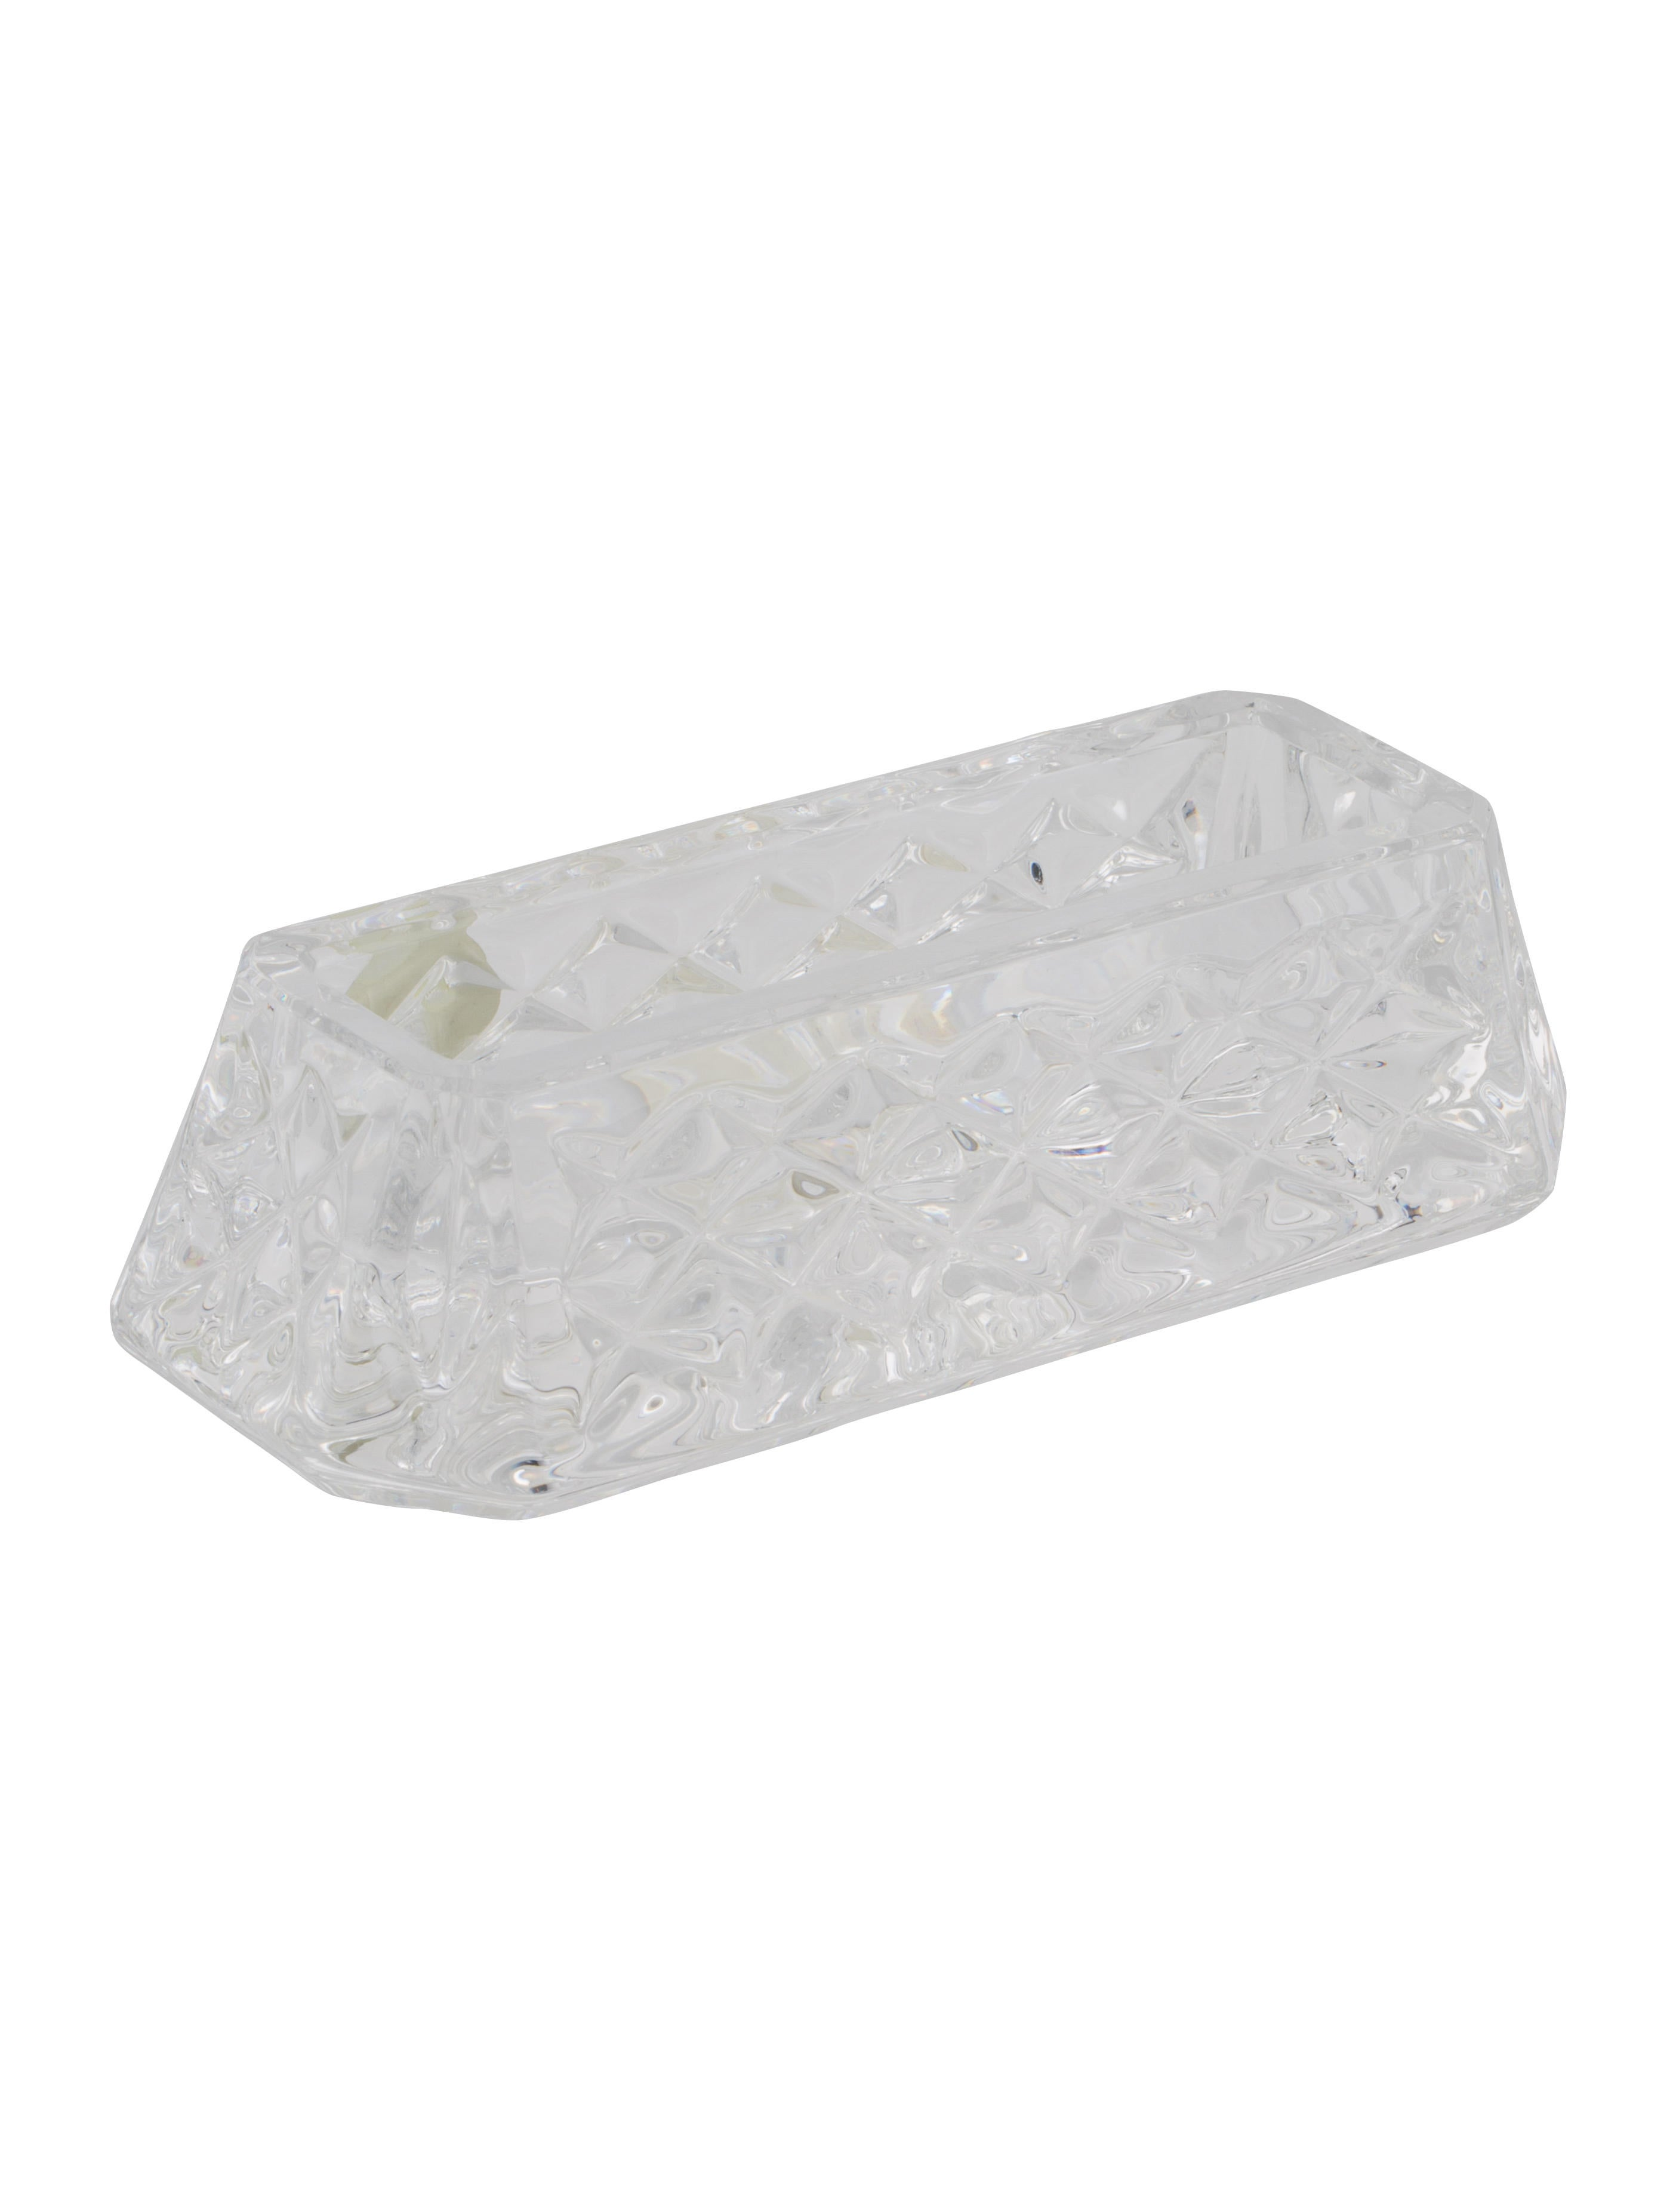 Waterford Crystal Westover Business Card Holder W5W23016 | The RealReal